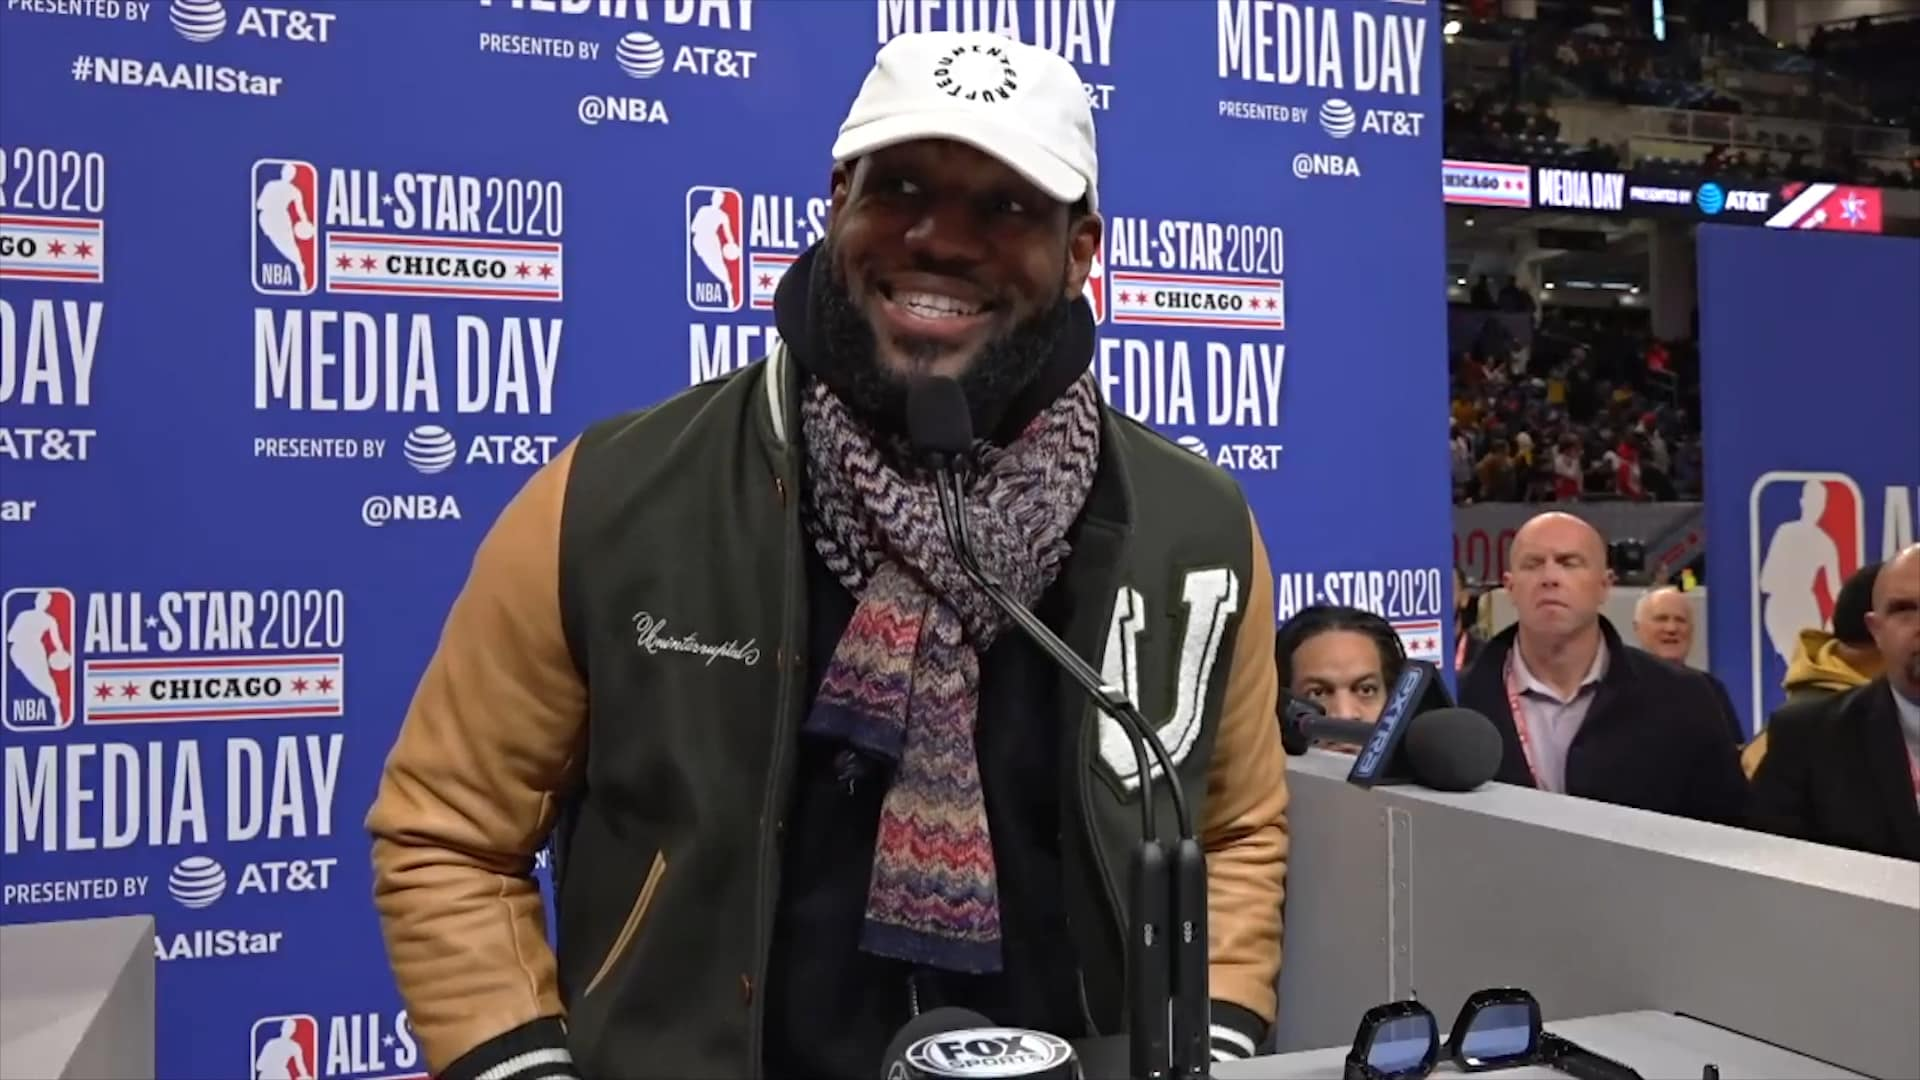 Lakers All-Star Media Day: LeBron James (2/15/20)